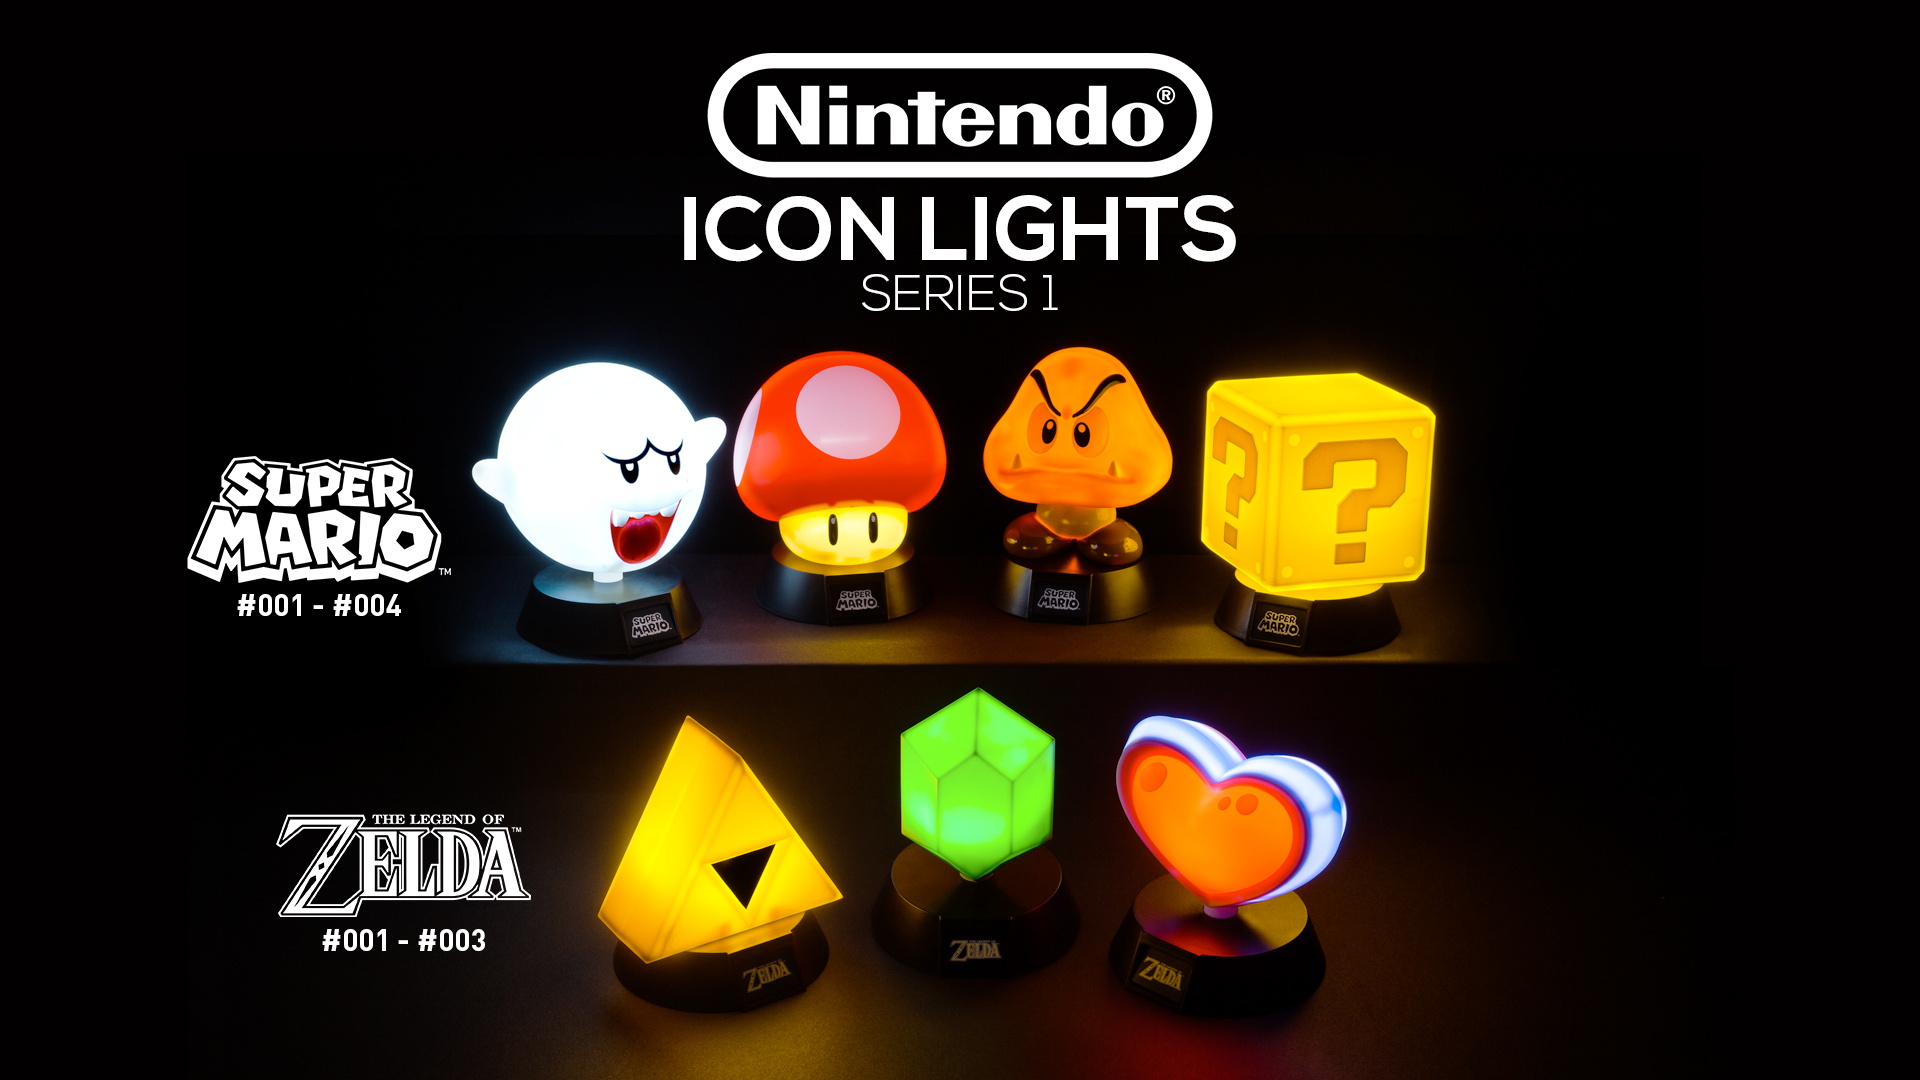 Nintendo Icon Lights Paladone